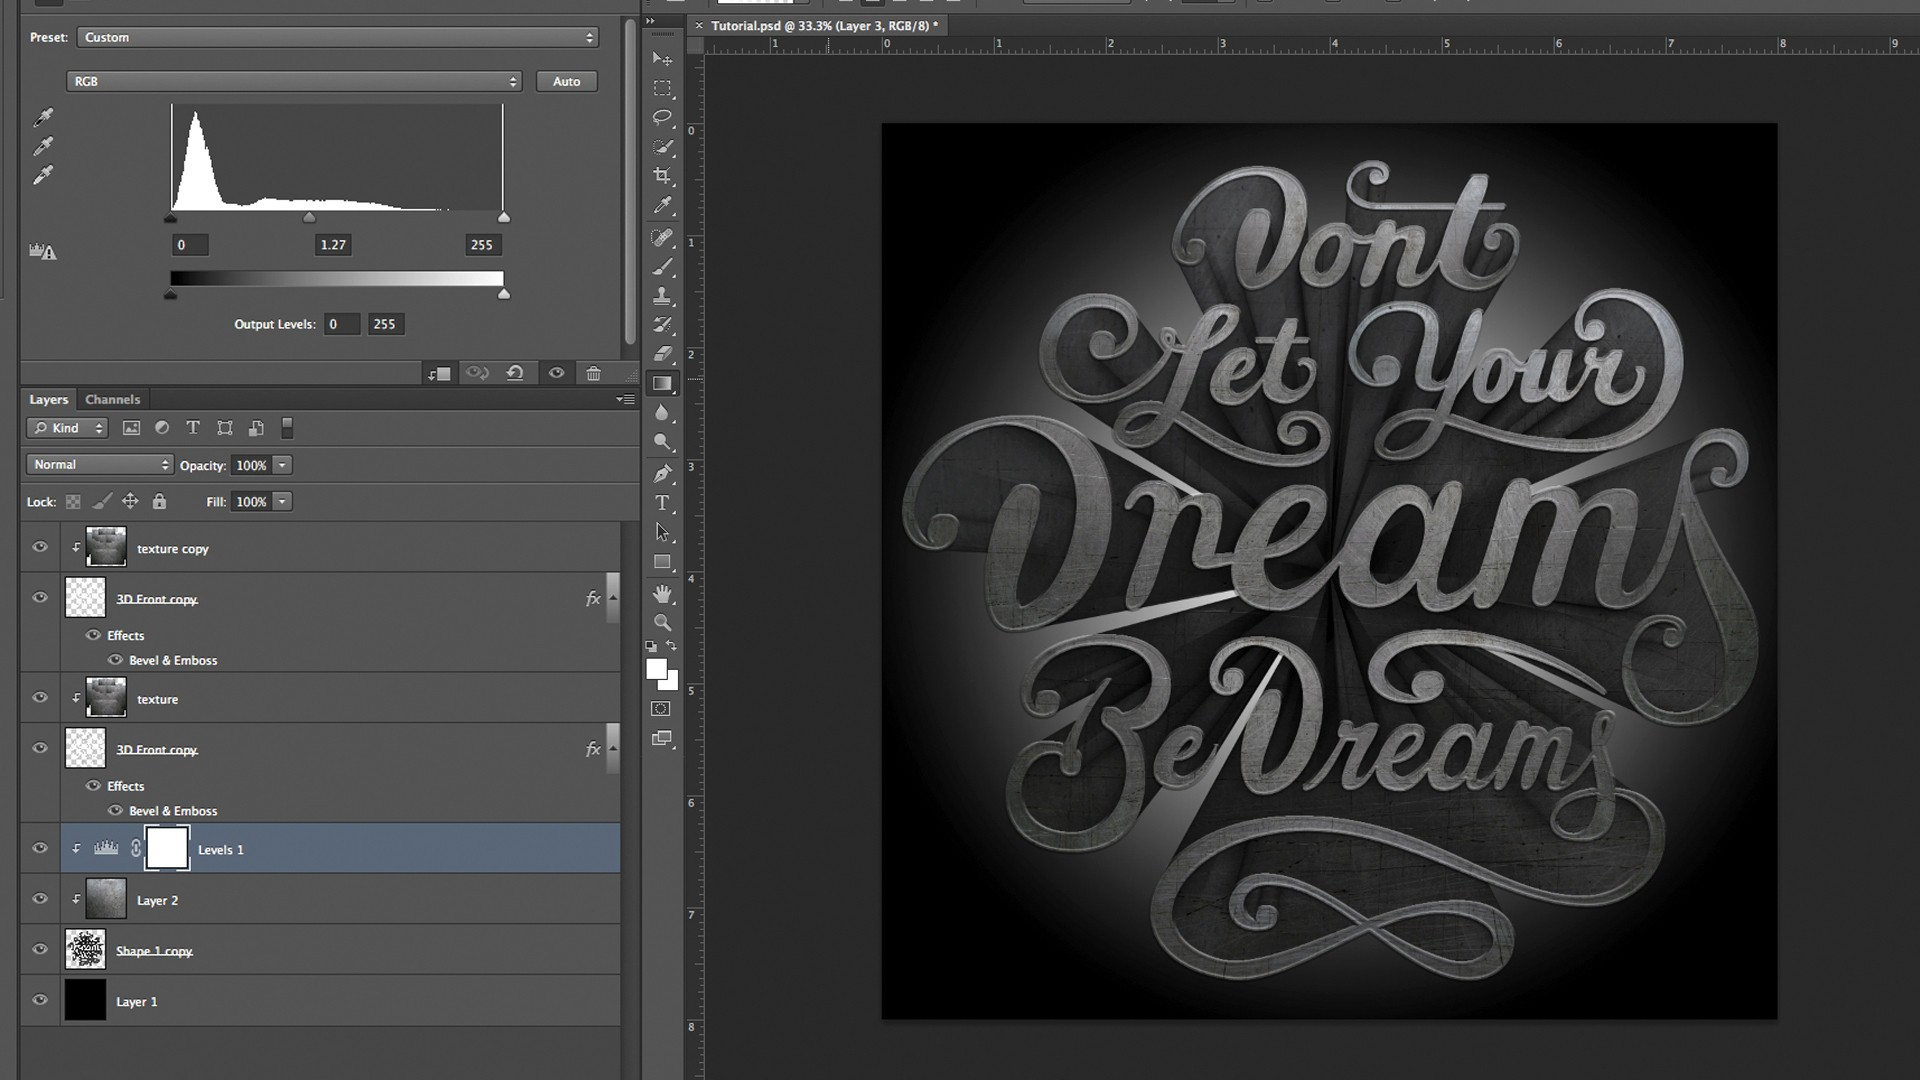 Photoshop & Maxon Cinema 4D tutorial: Learn the best ways to create